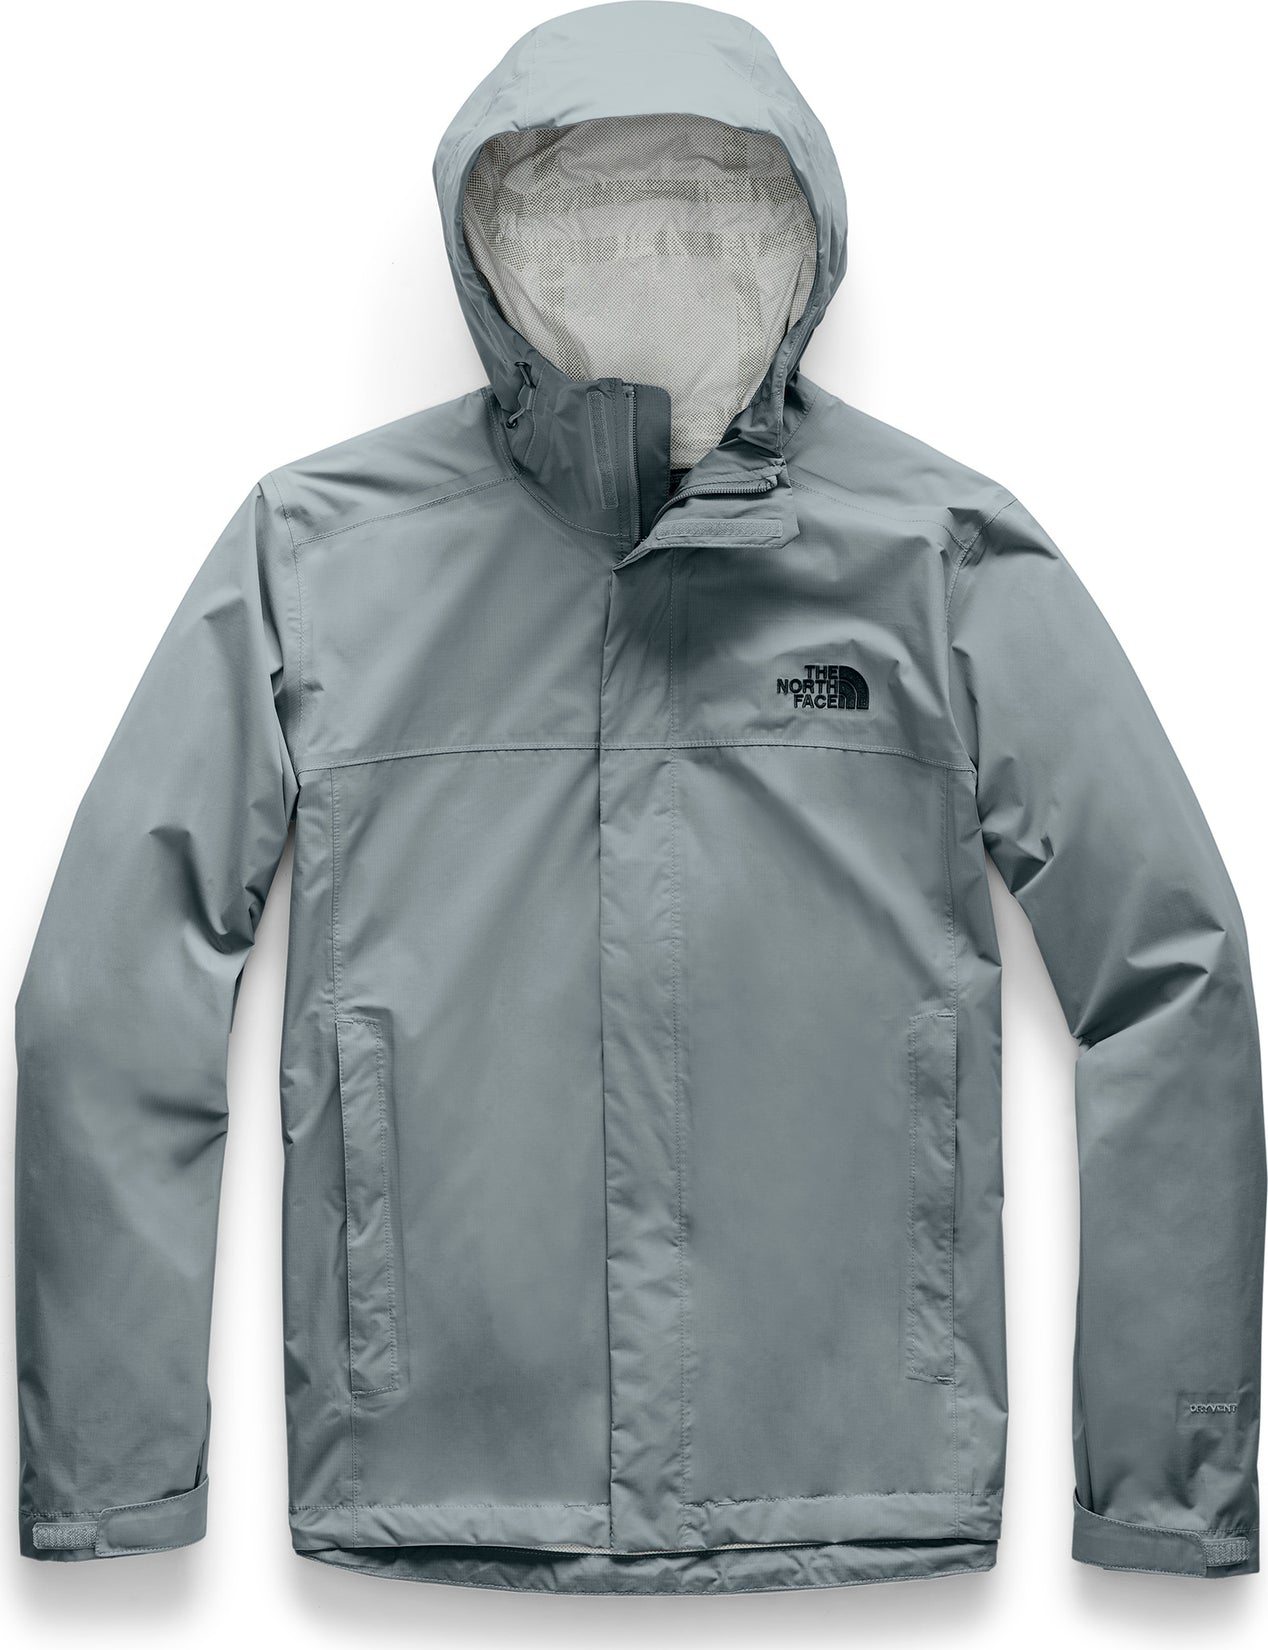 d0eaffb10 The North Face Venture 2 Jacket - Men's